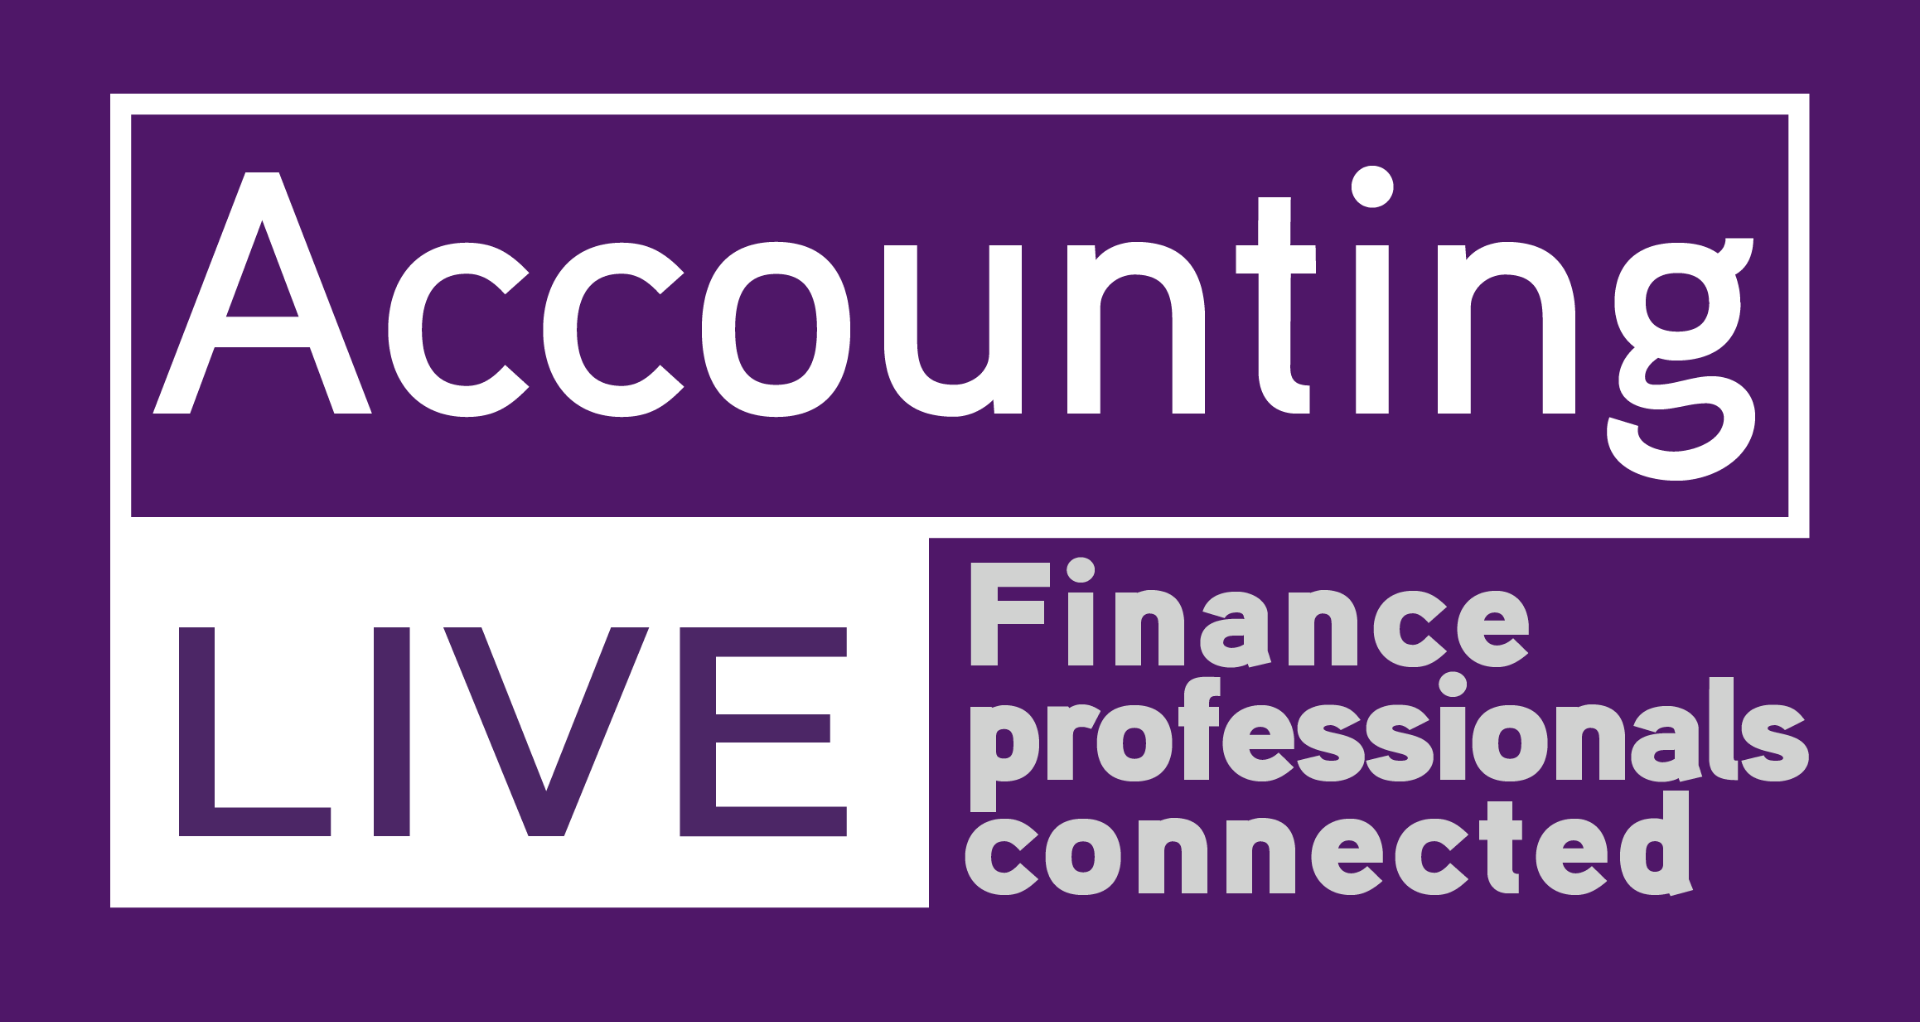 Banner advertising Accounting Live in Glasgow in November 2018 where Forecast 5, top UK forecasting software will be exhibited.